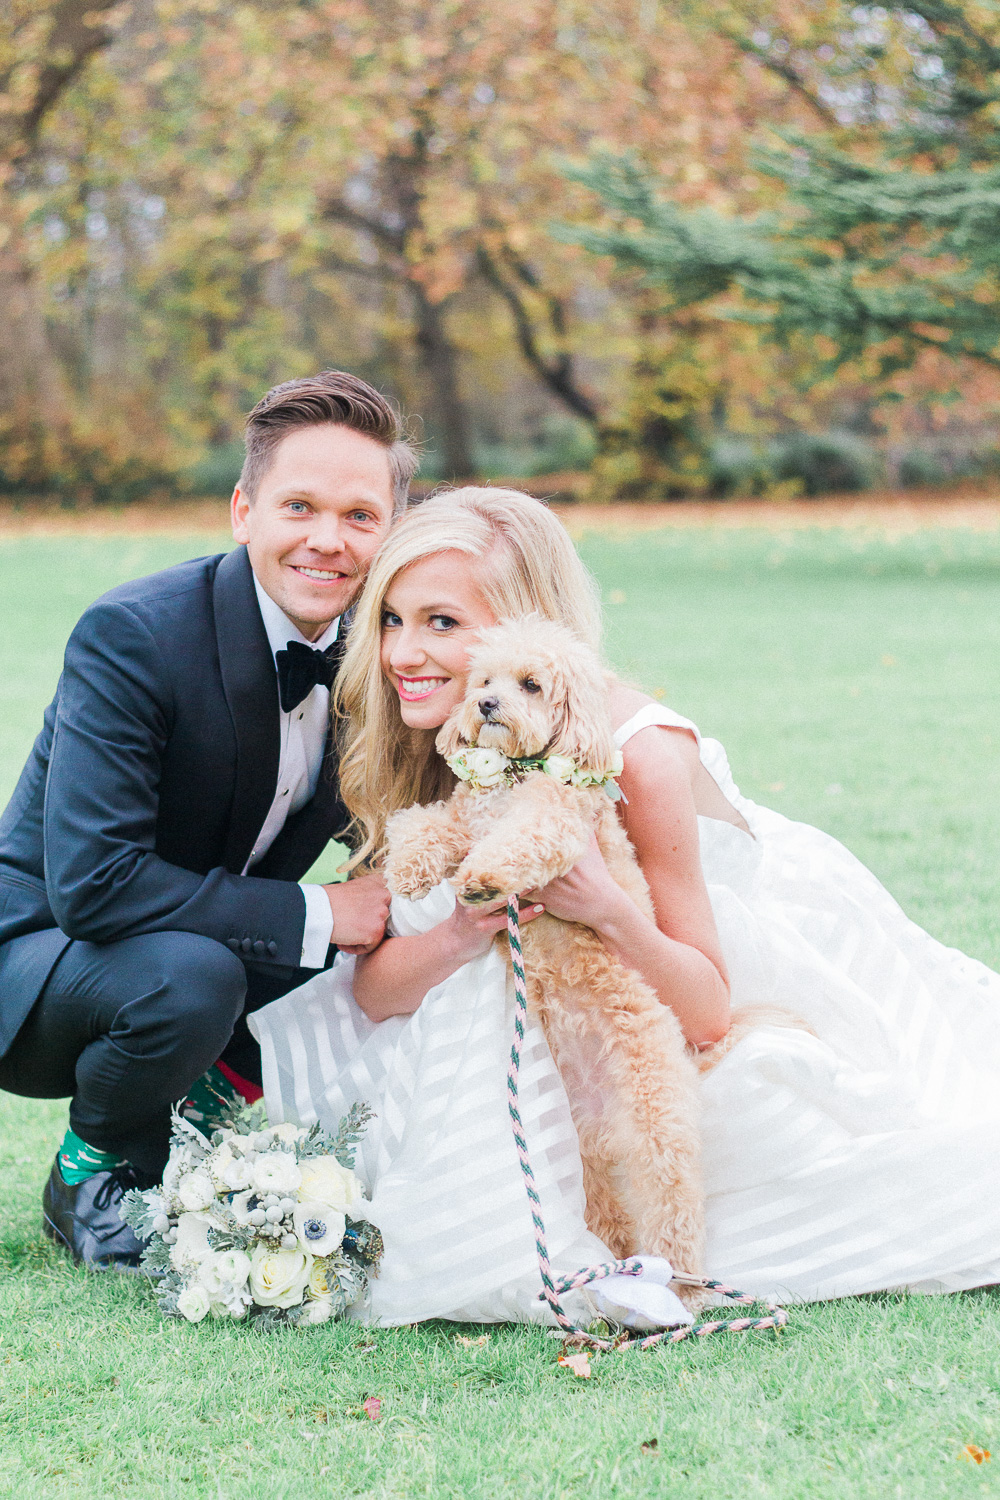 Portrait of the bride, groom and their mini french poodle london wedding photographer Maxeen Kim